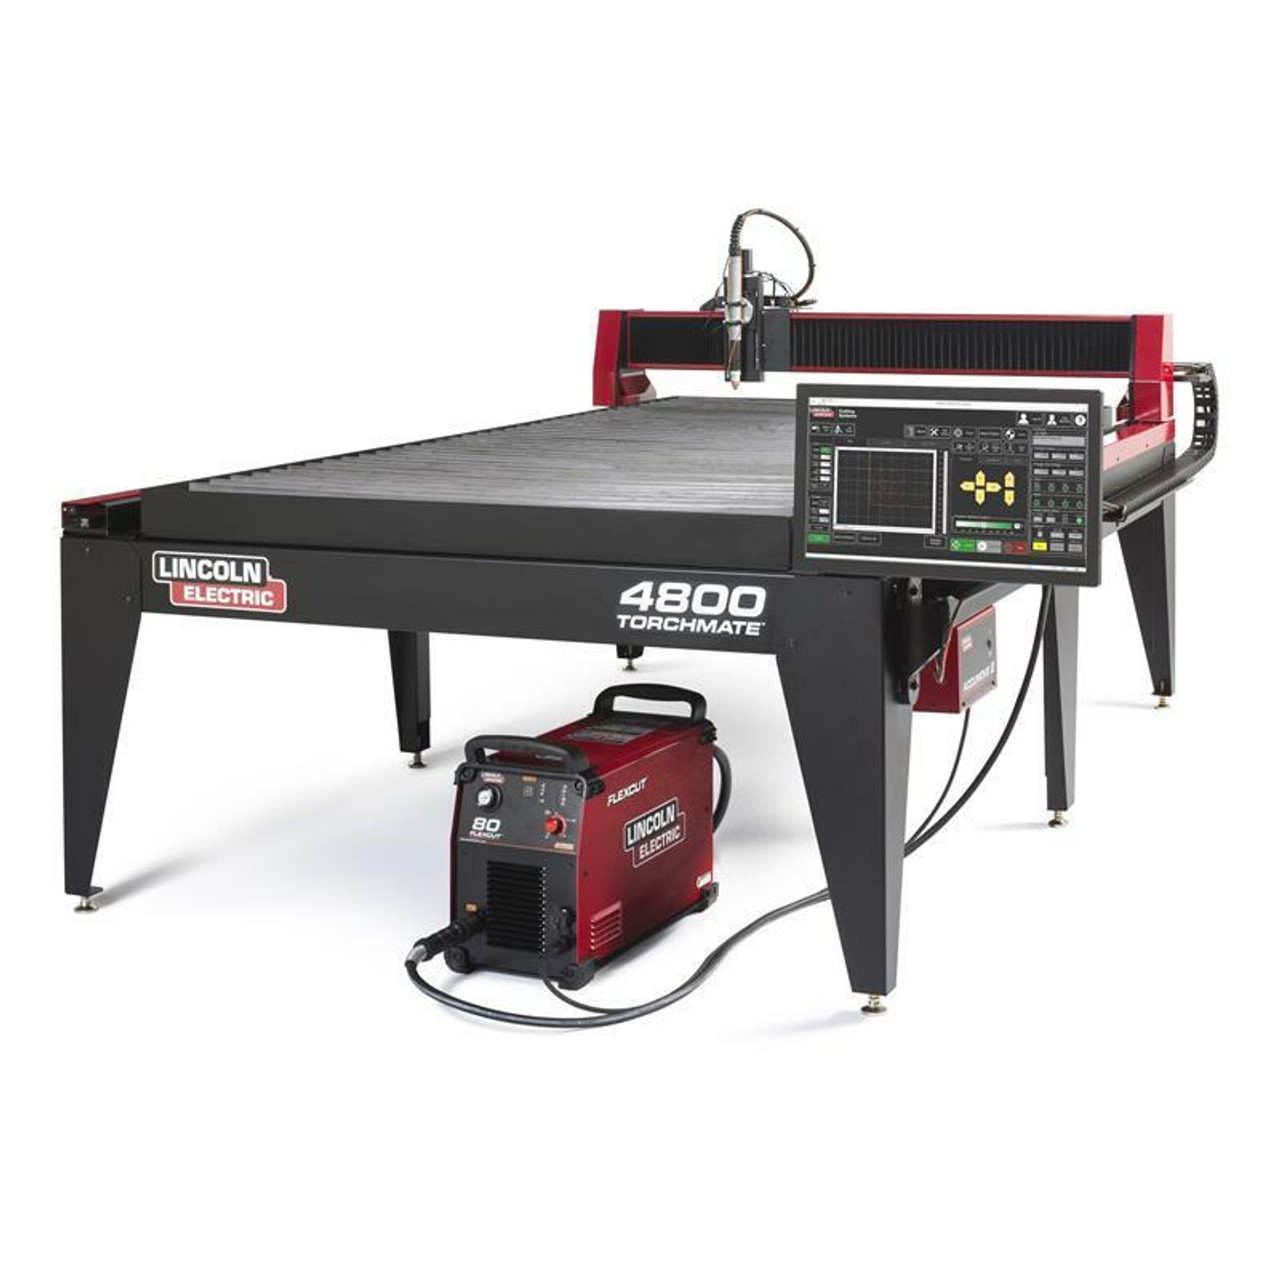 Lincoln Torchmate 4800 Fully Assembled 4x8 Plasma Cutting Table